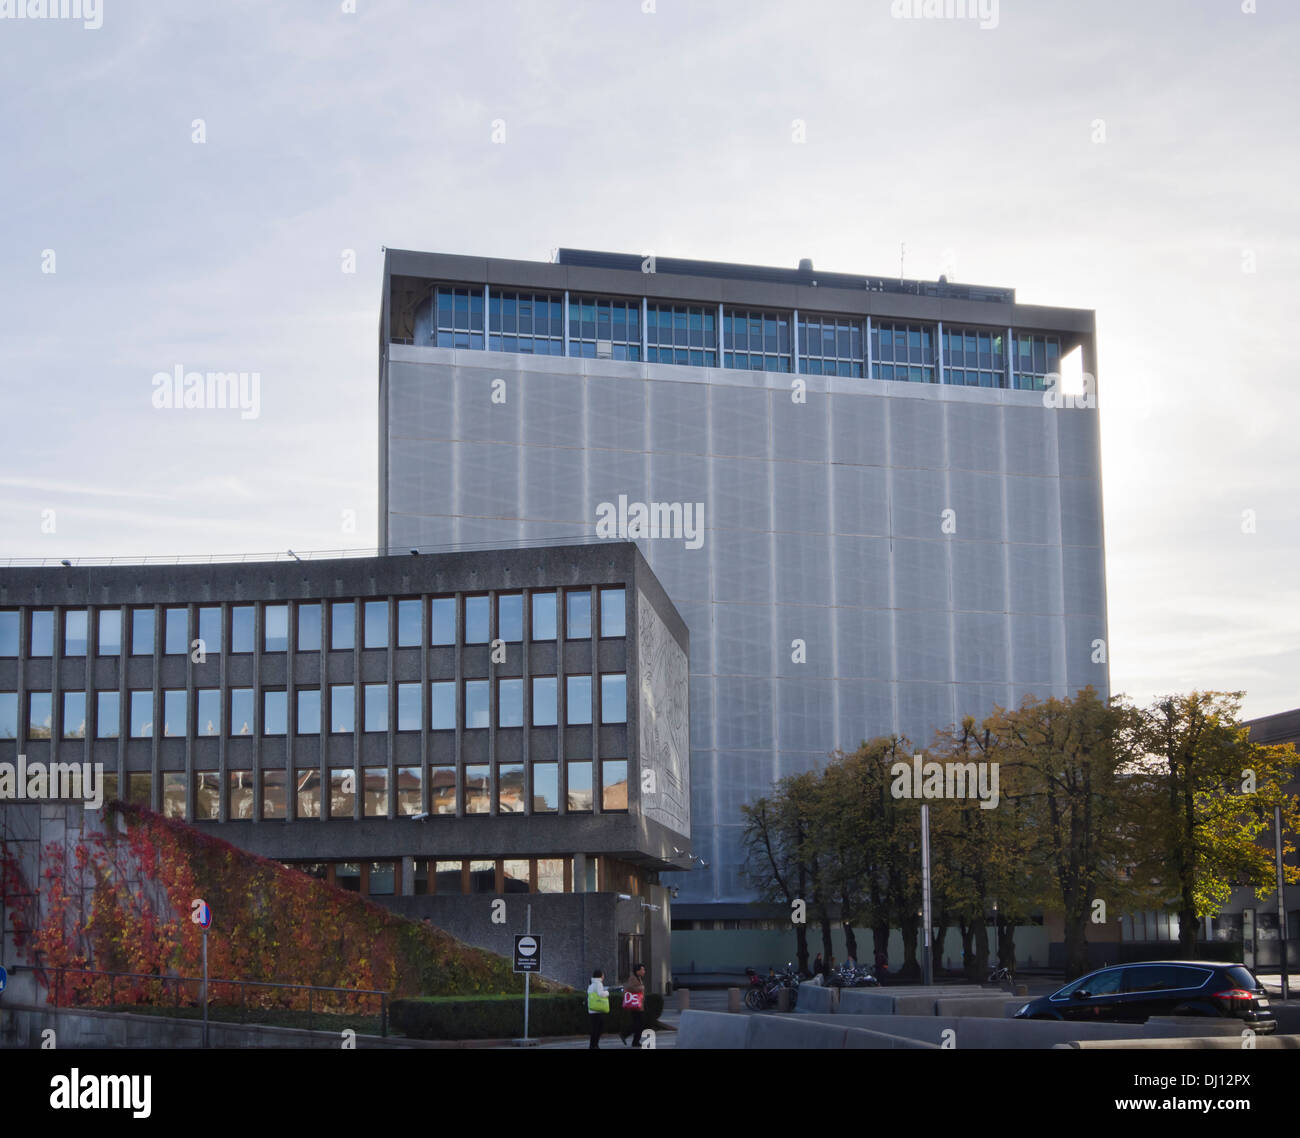 Deserted government buildings after the bomb attack in central Oslo Norway, demolition or conservation not decided, - Stock Image